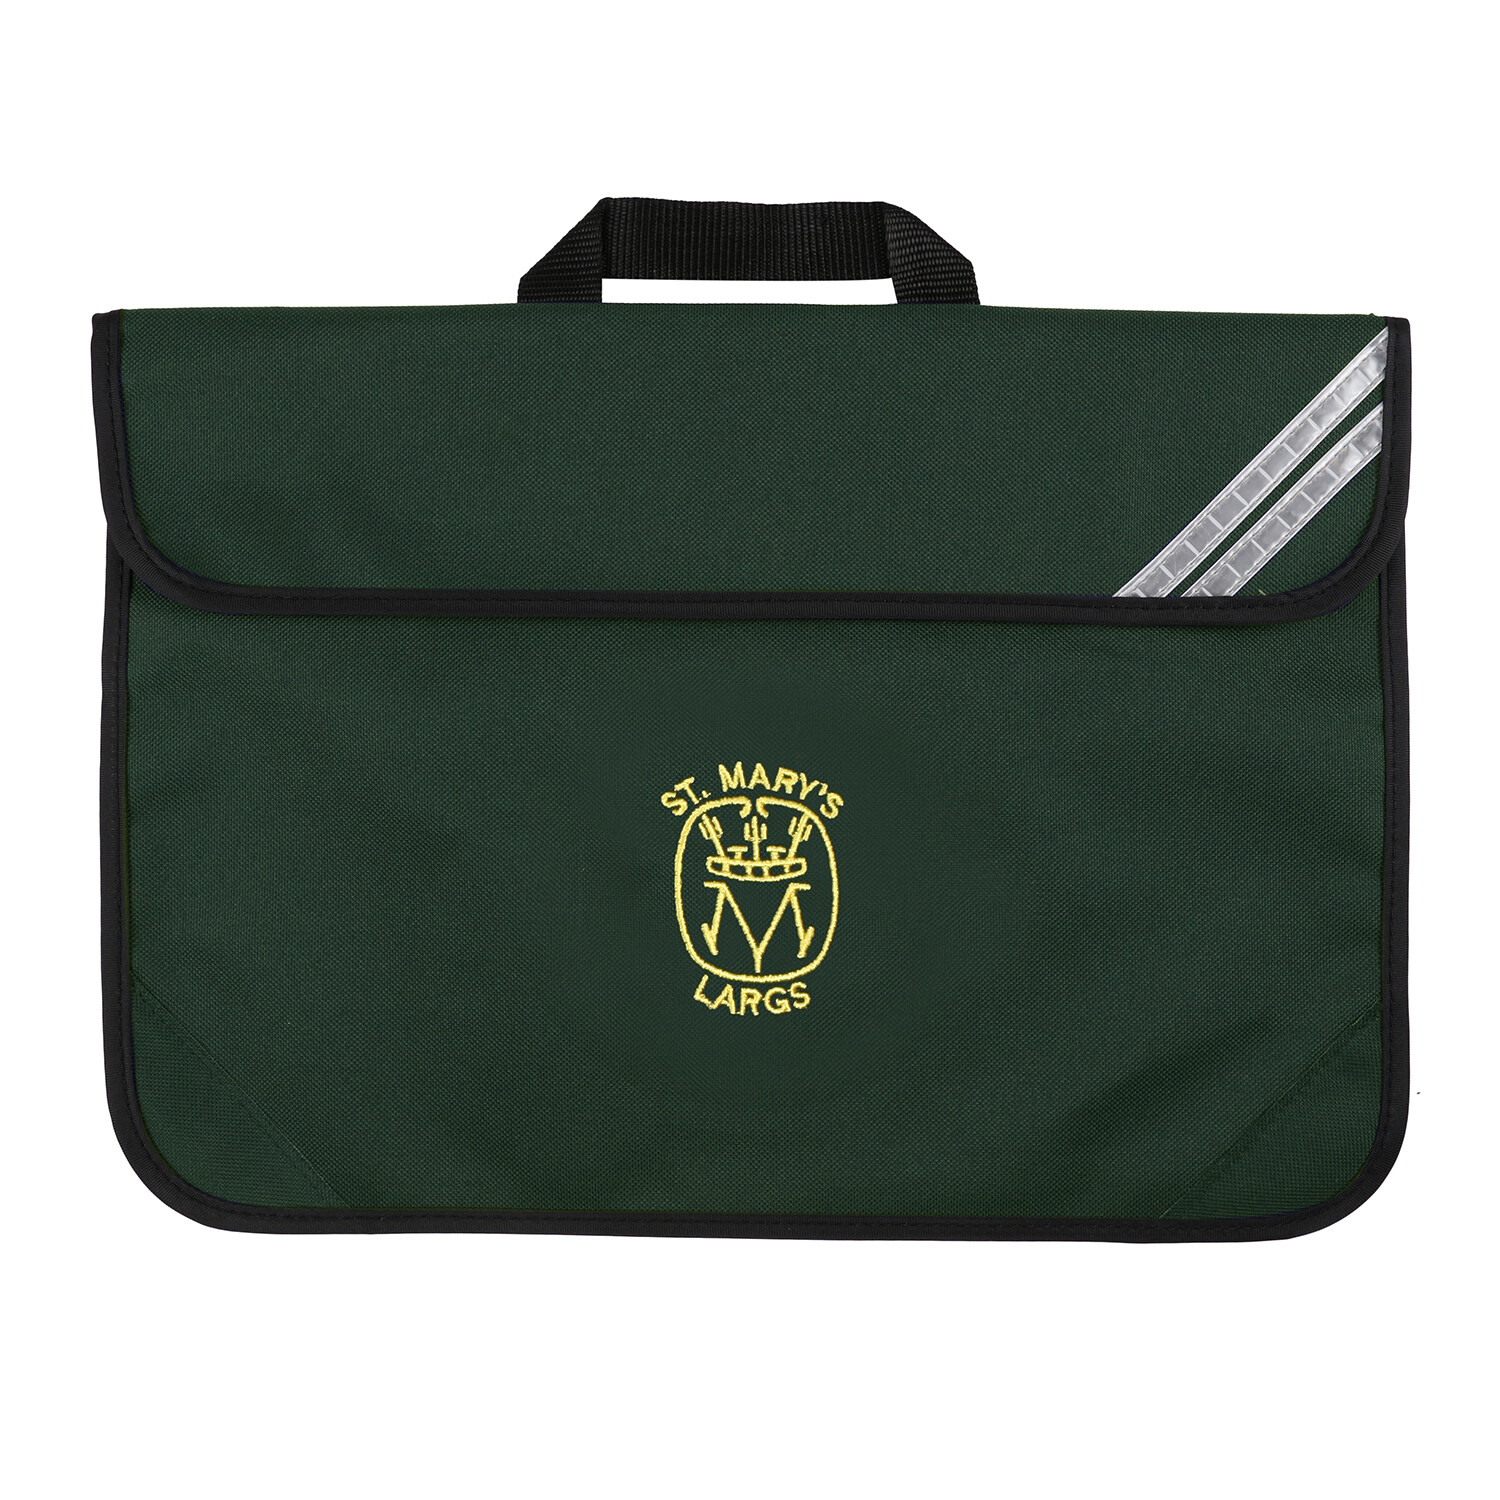 St Mary's Primary (Largs) Book Bag